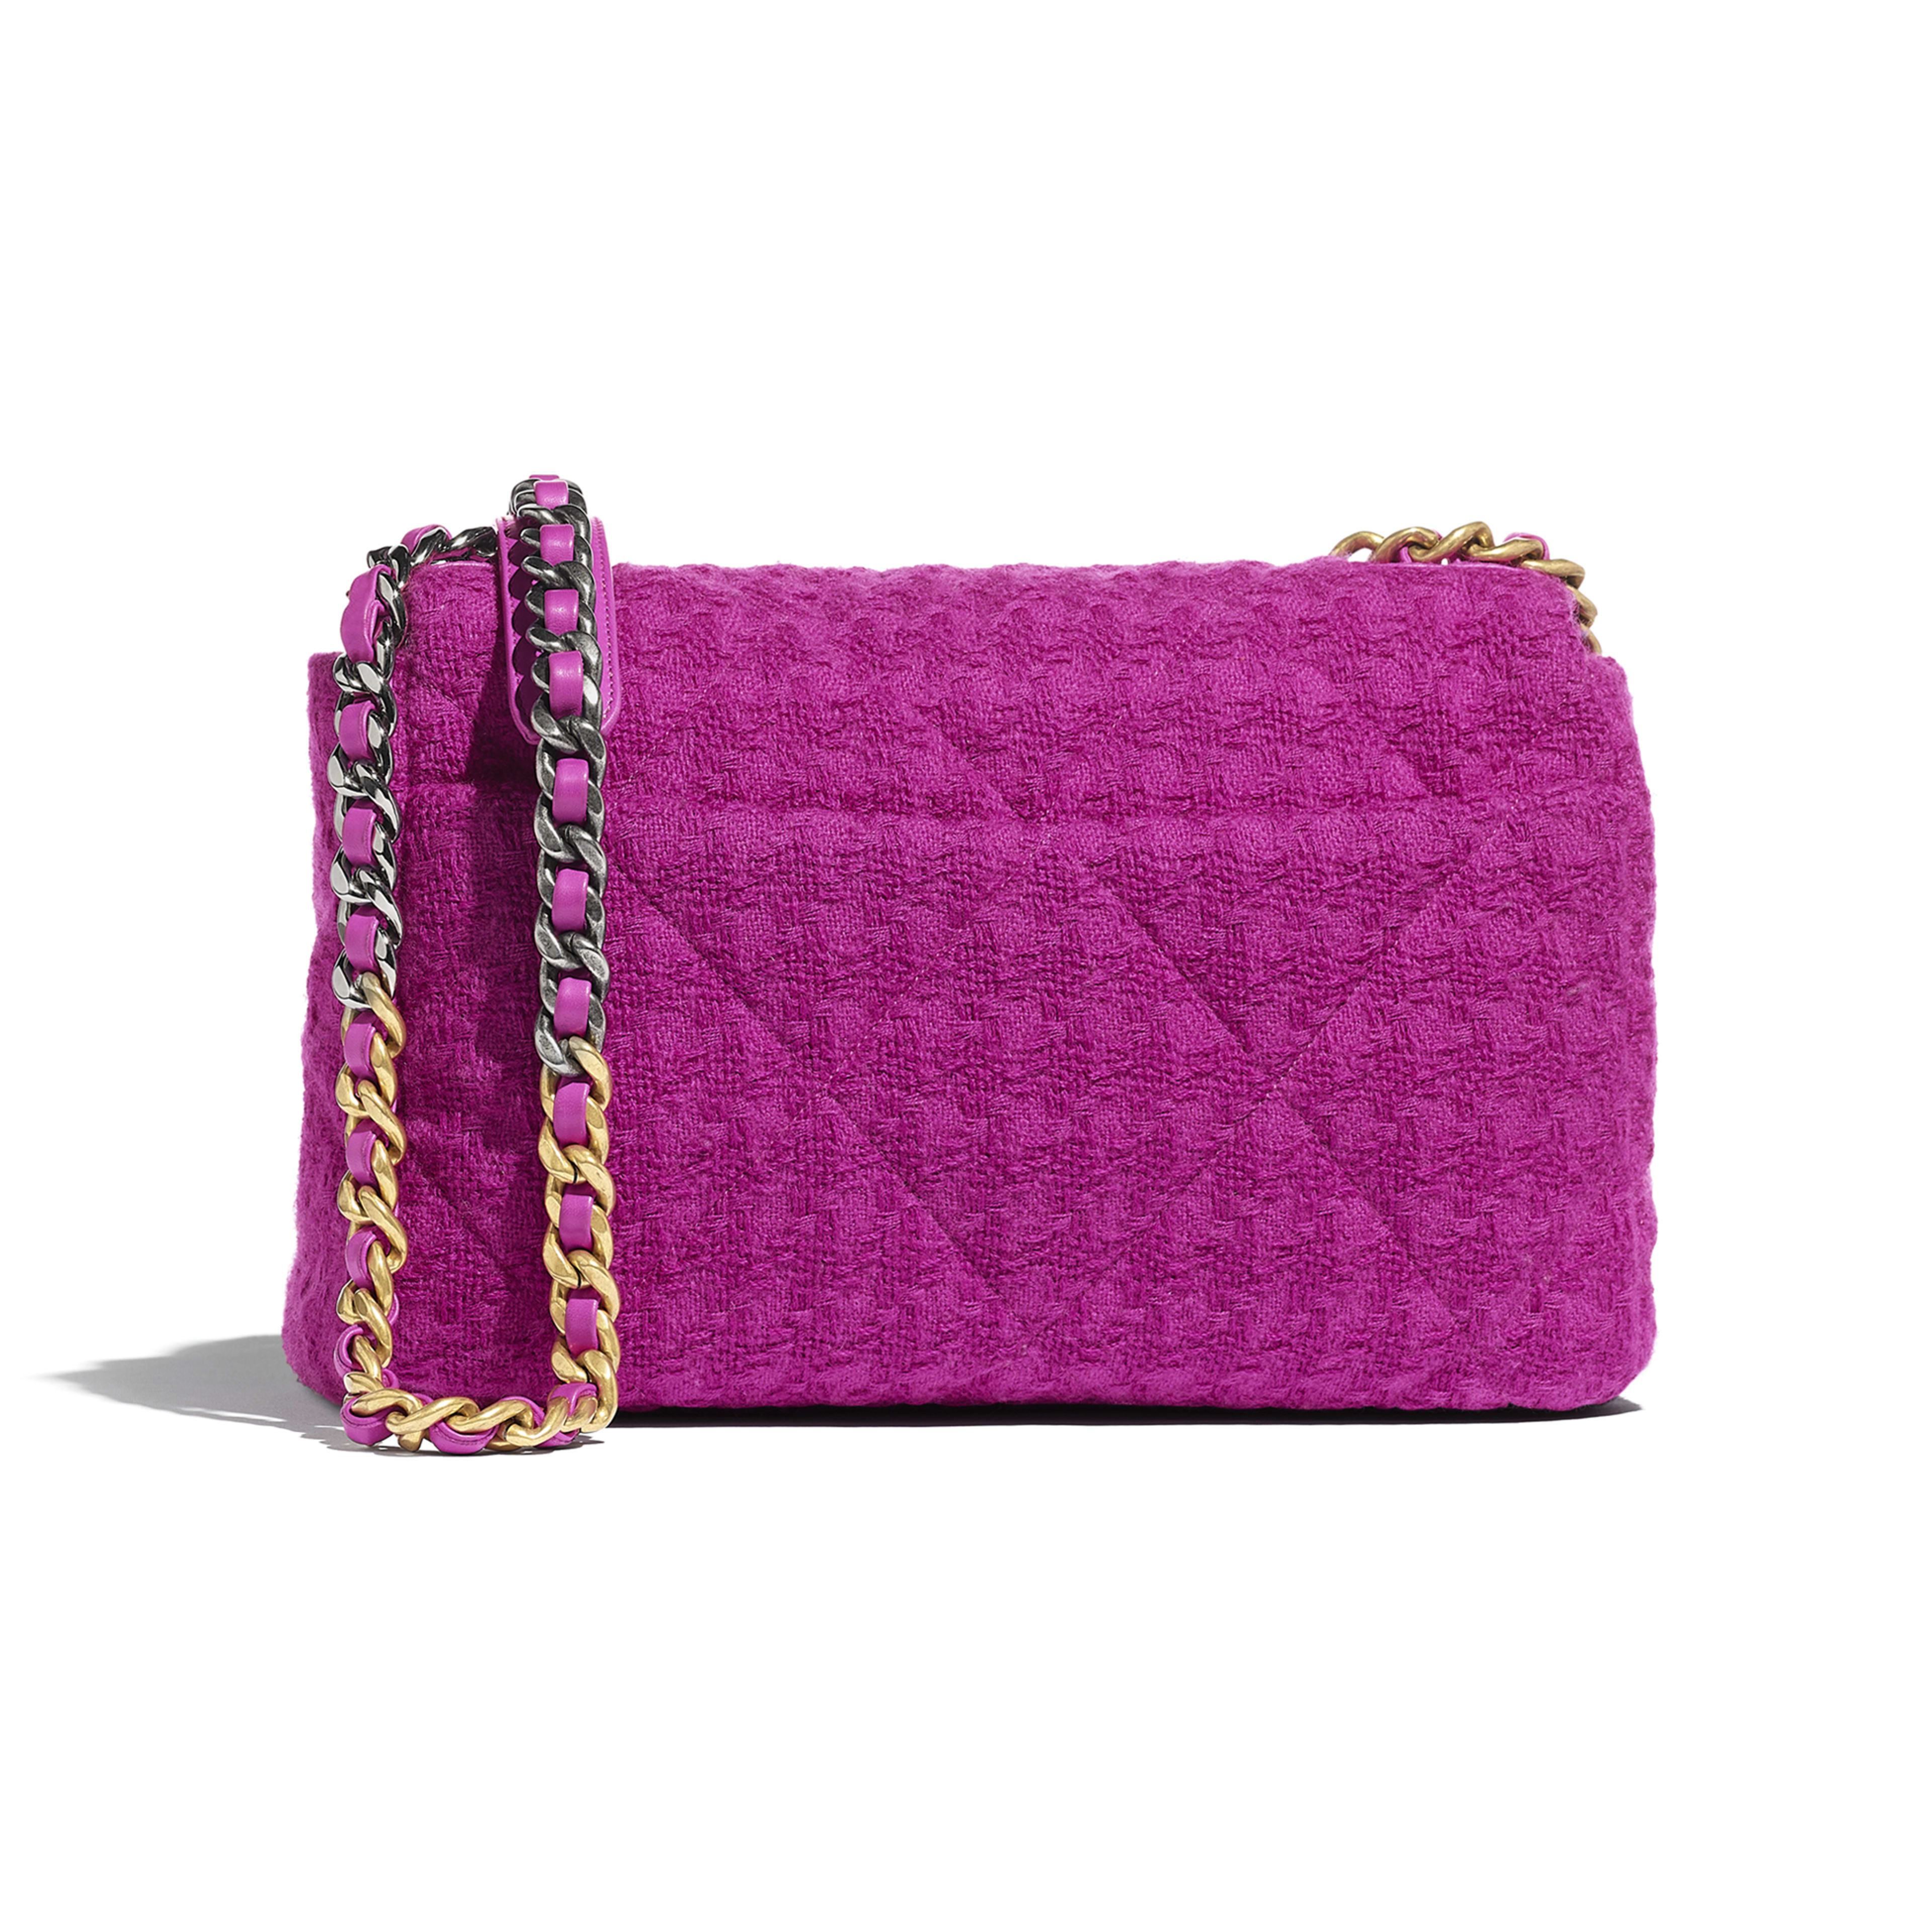 CHANEL 19 Large Flap Bag - Fuchsia - Wool Tweed, Gold-Tone, Silver-Tone & Ruthenium-Finish Metal - Alternative view - see full sized version